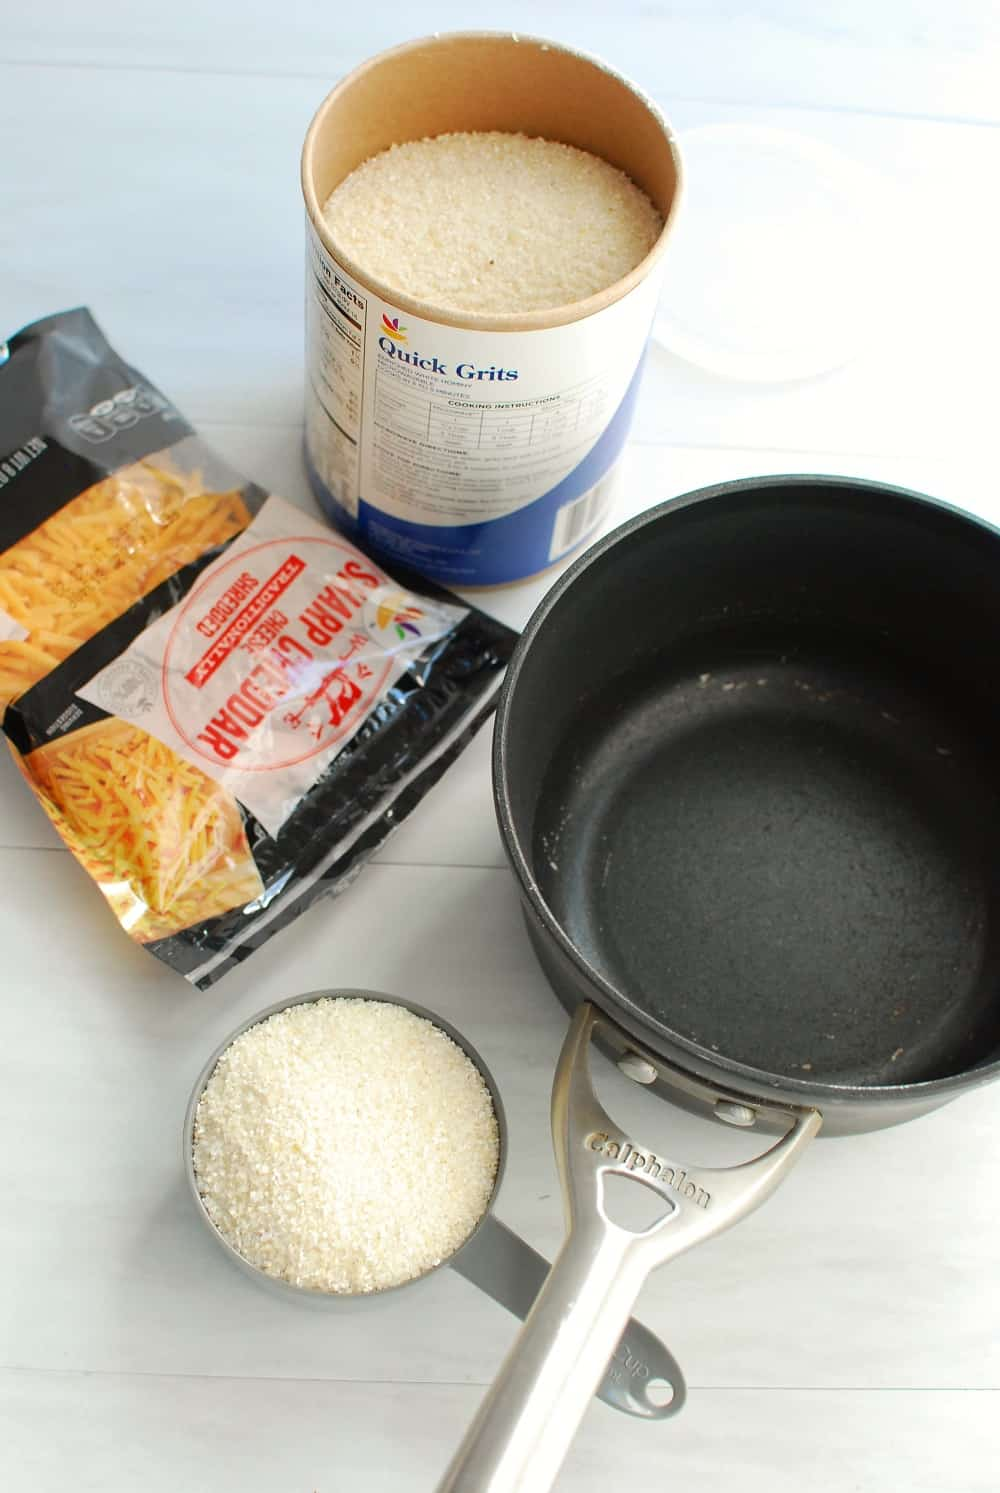 Ingredients to prepare cheesy grits